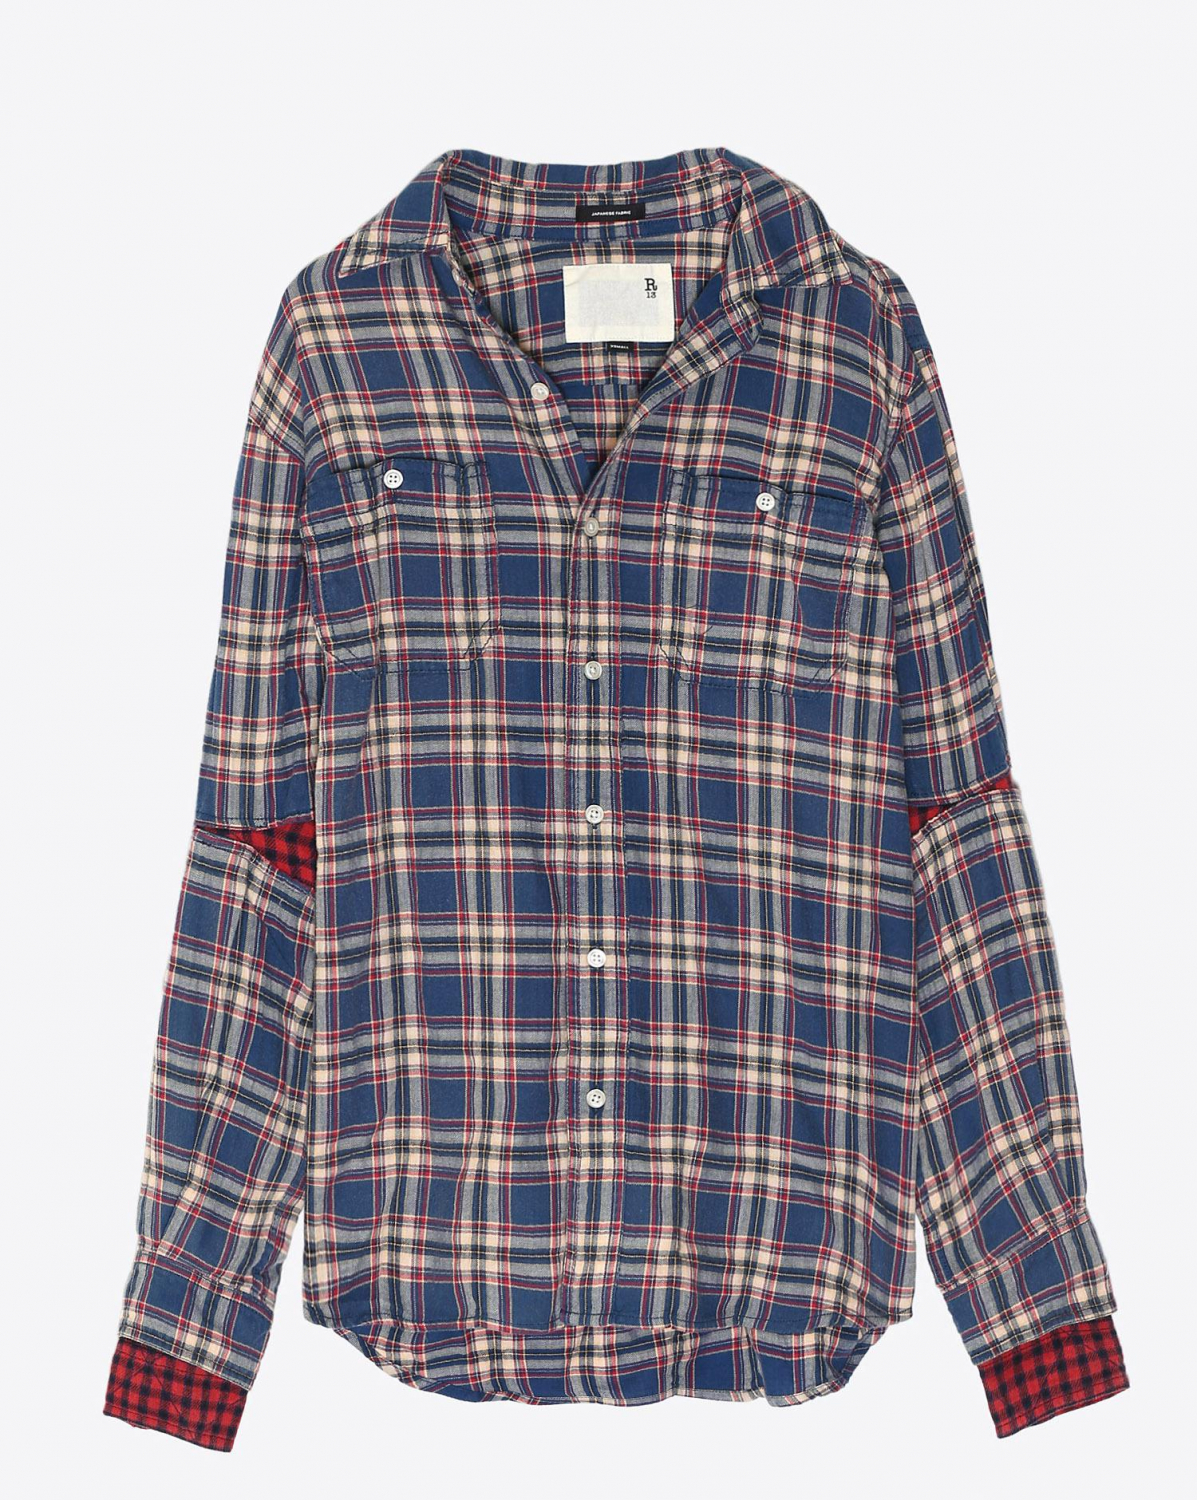 R13 Denim Collection Double Sleeve Shirt - Blue Pink Plaid